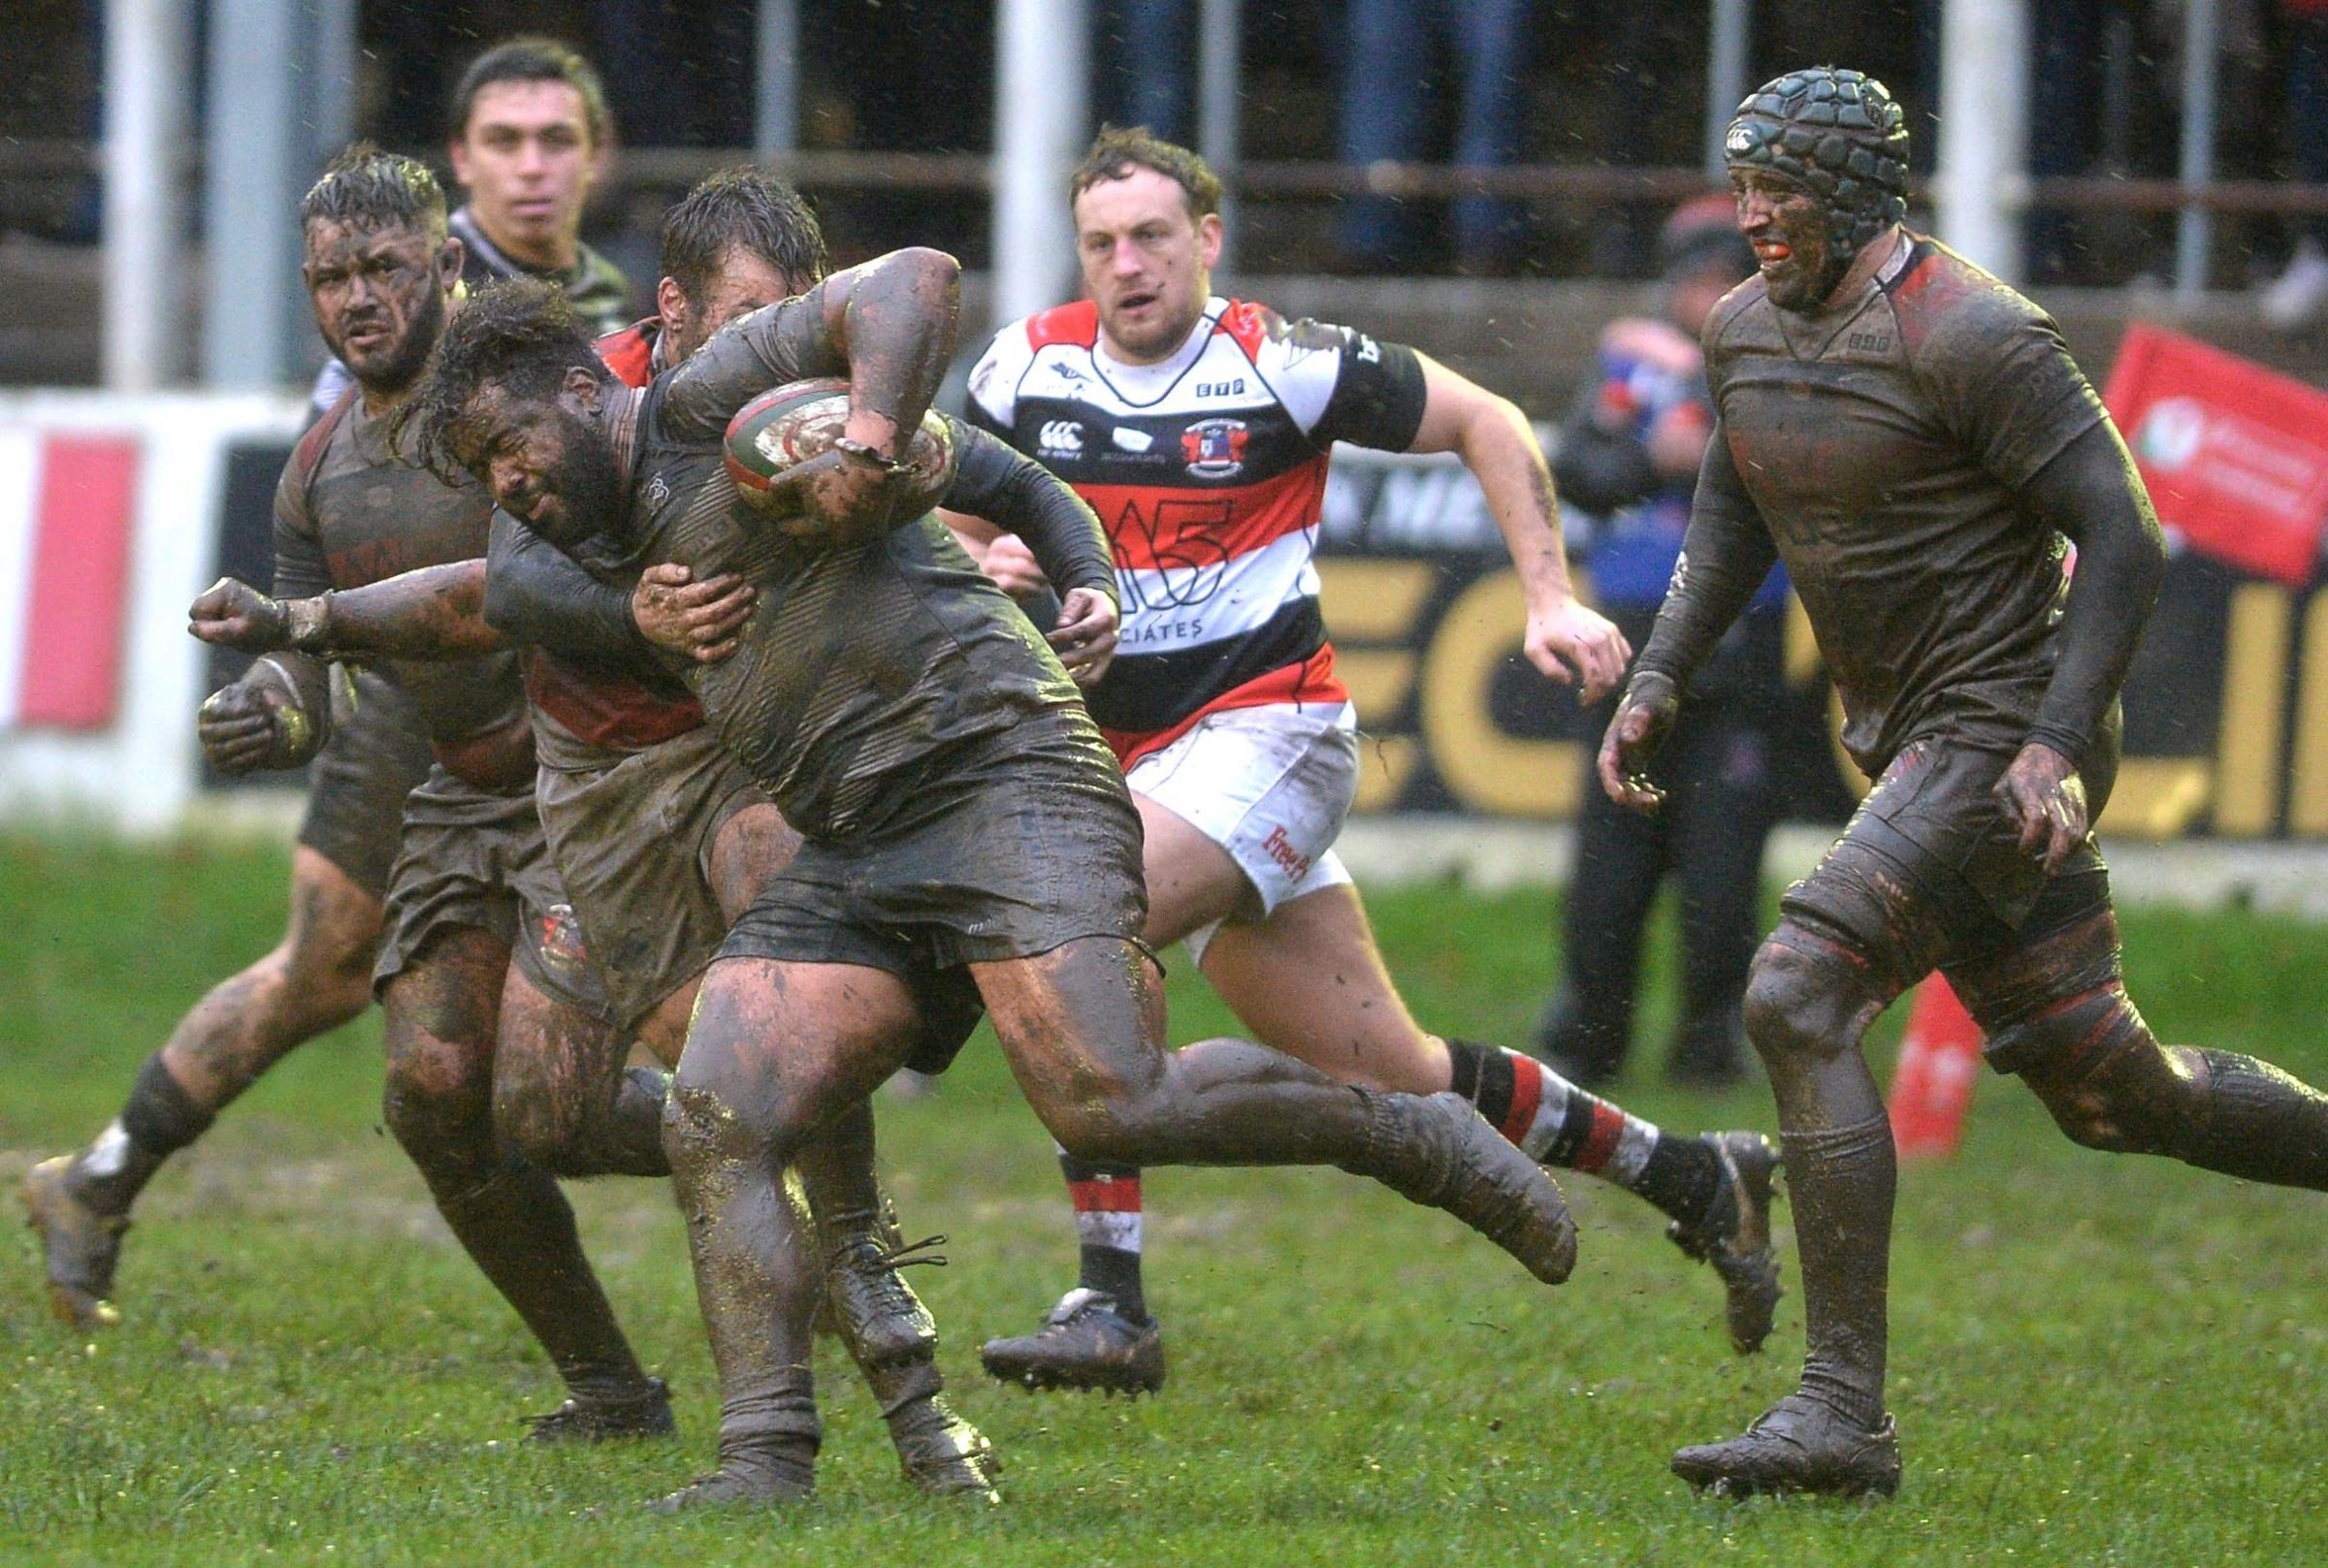 CUP CLASH: A muddied Wes Cunliffe leads the charge for Cross Keys in last weekend's cup defeat to Pontypool